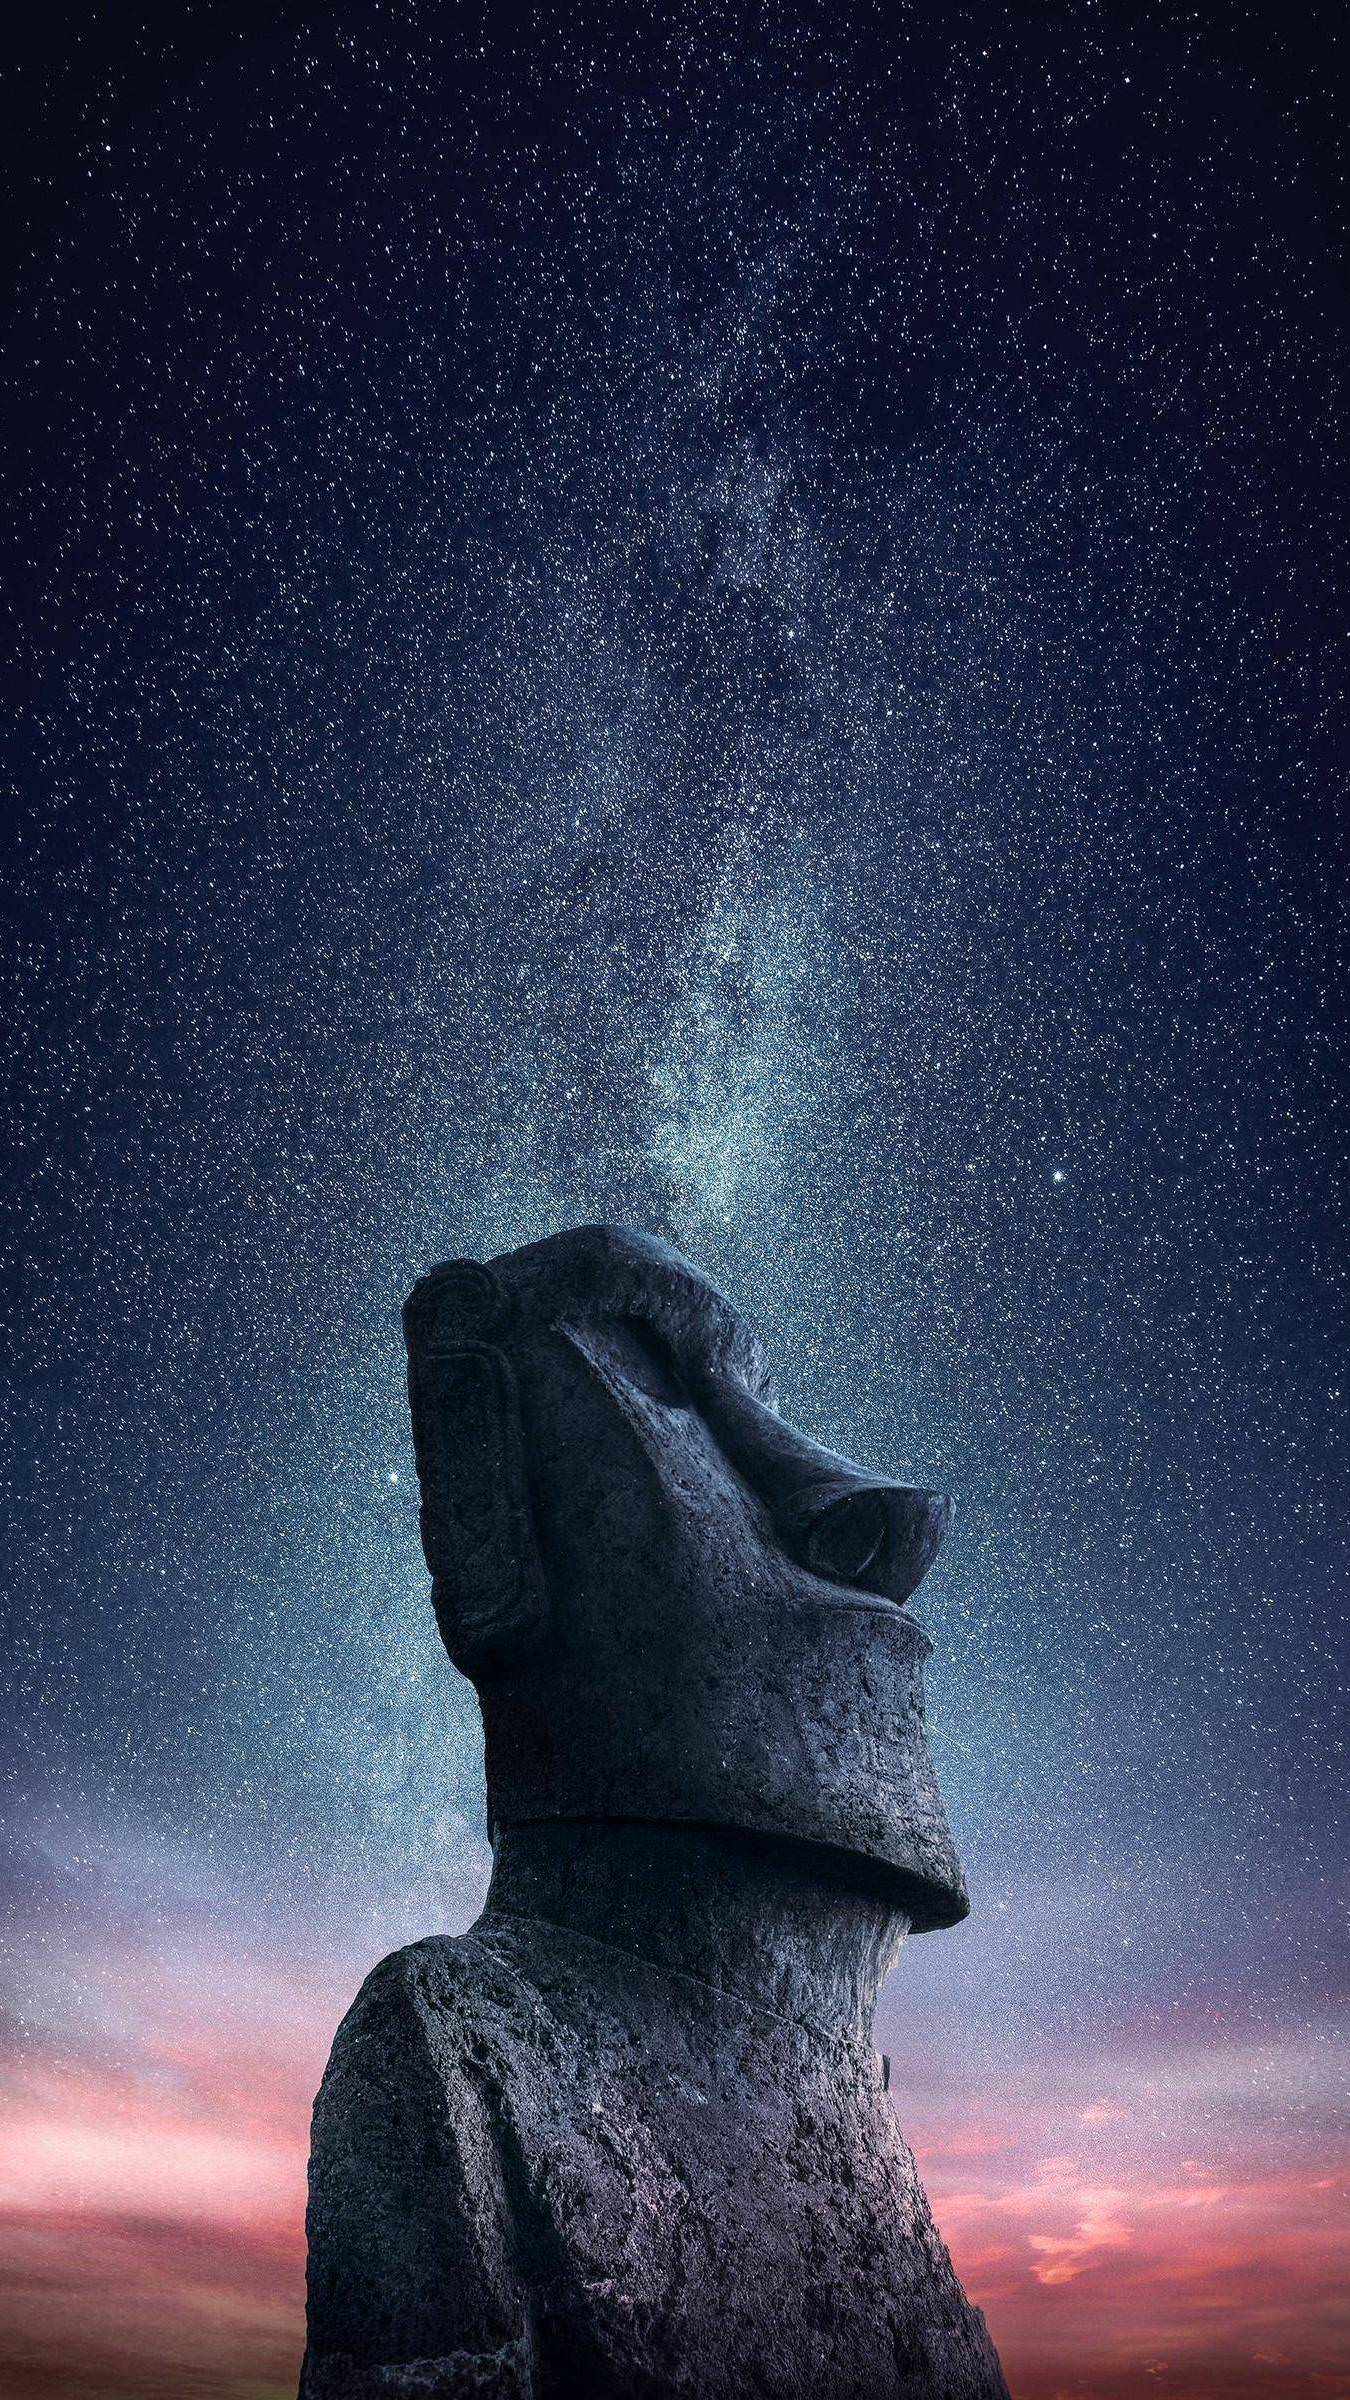 Wallpapers I made of the Easter Island photo